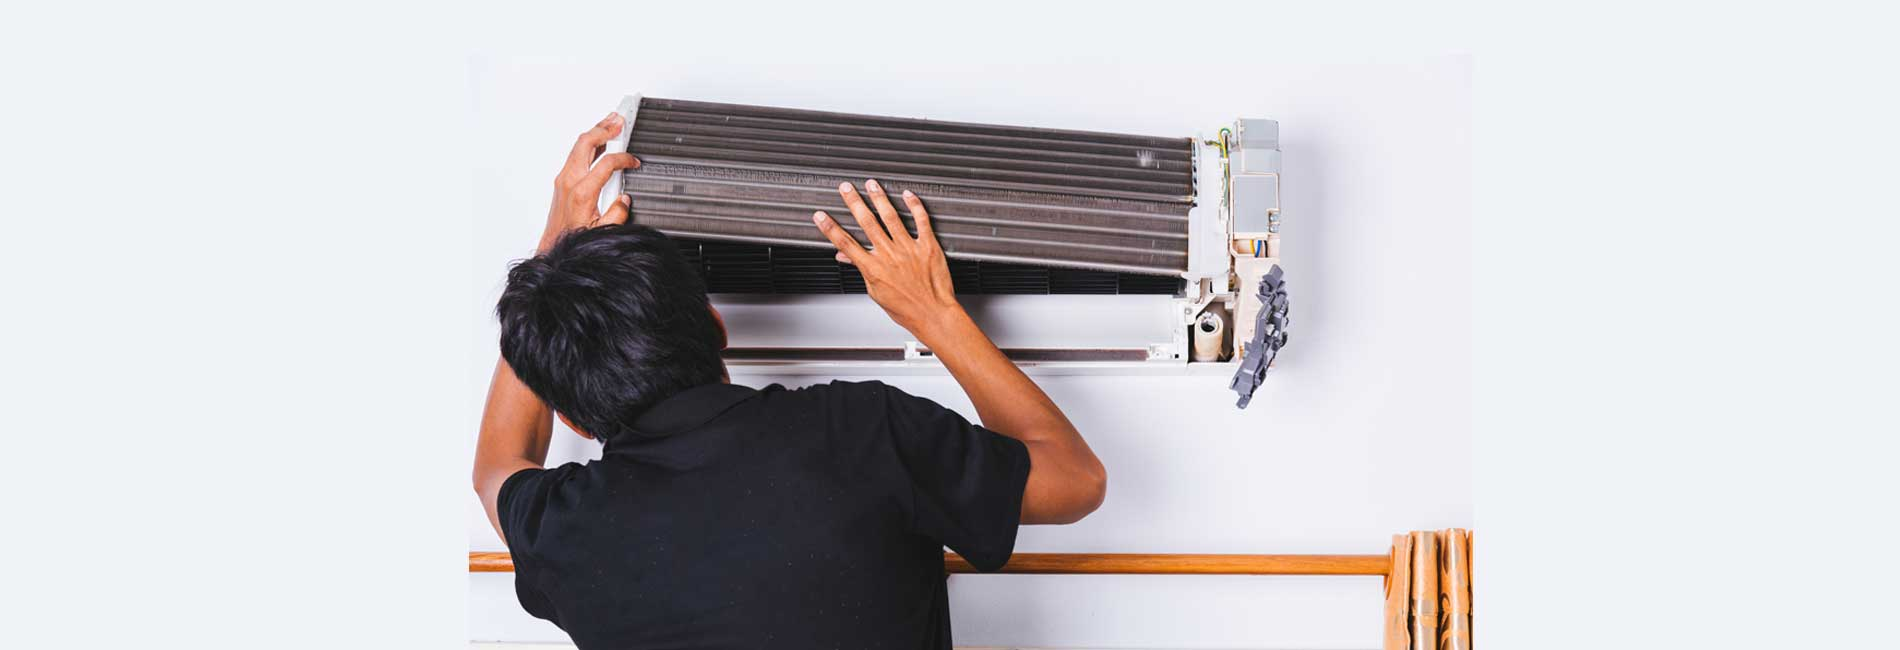 Air Conditioner Service in Kalavakkam